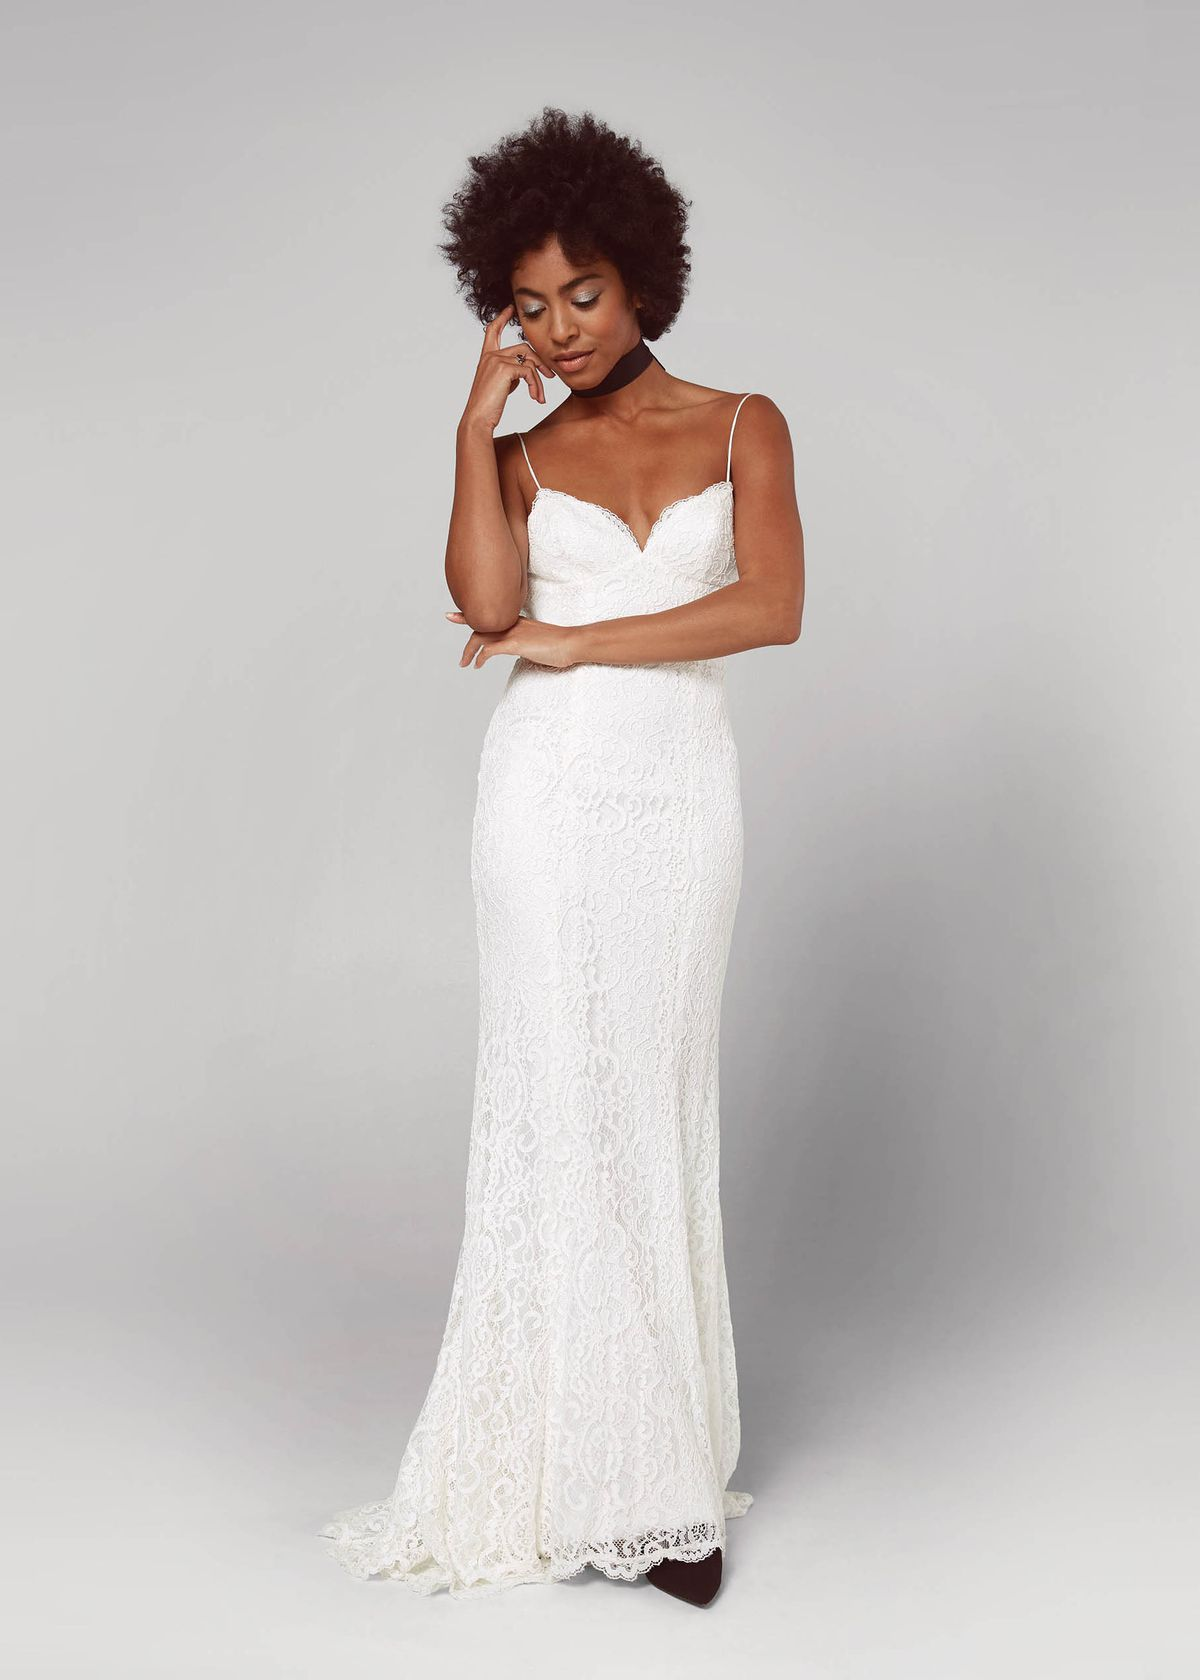 Where To Buy Affordable Wedding Dresses Racked - Wedding Dress Stores Indianapolis